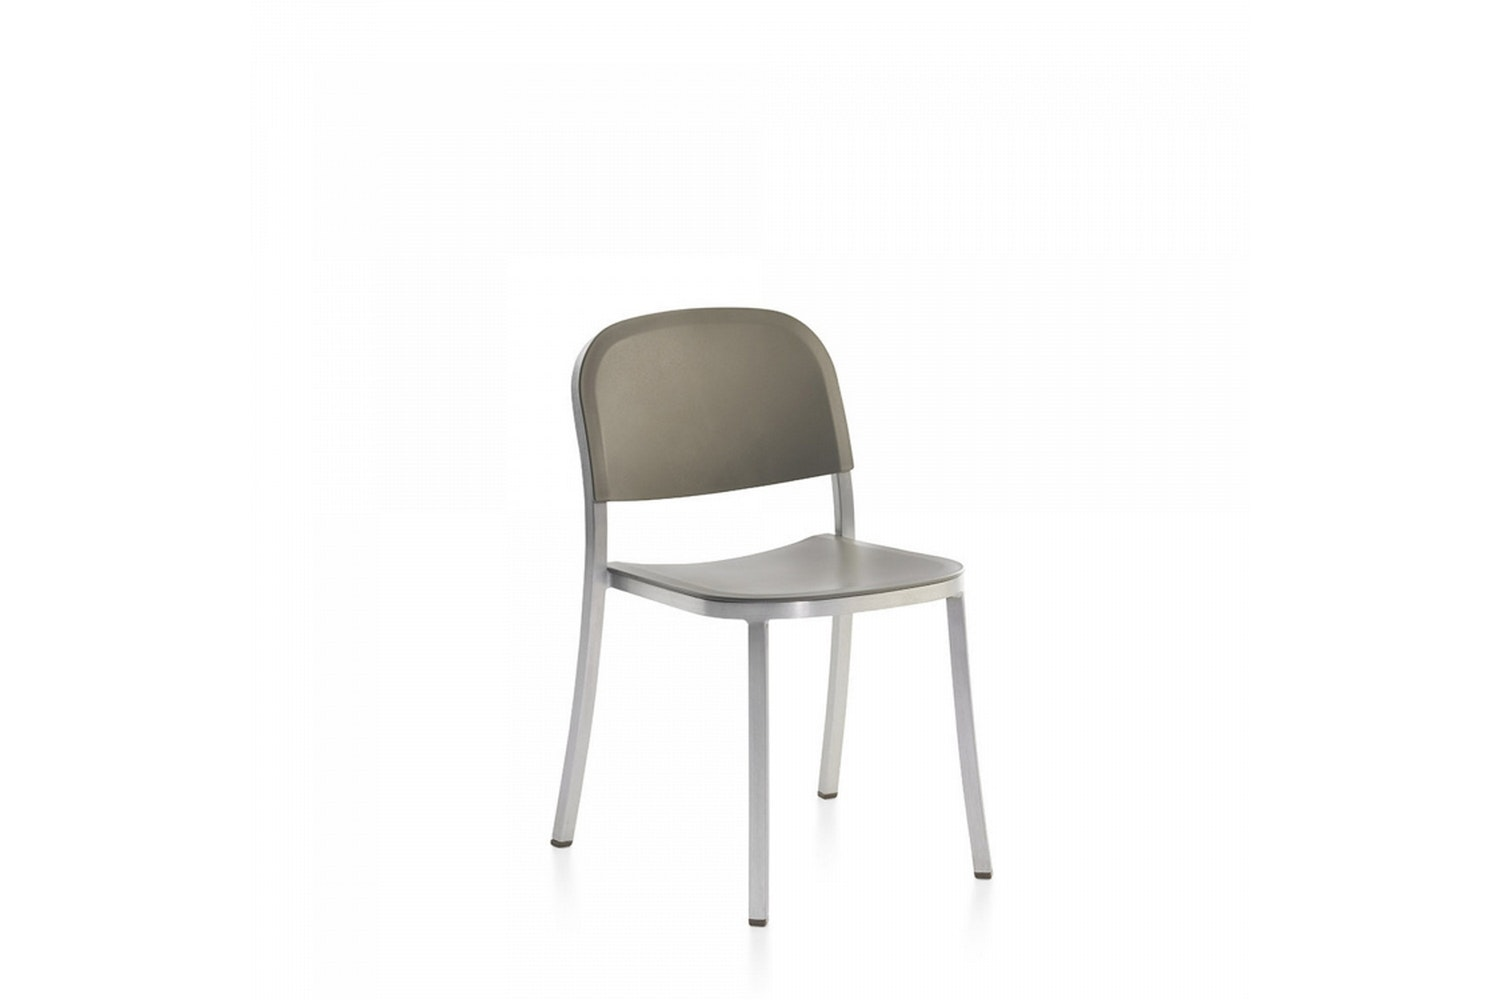 1 Inch by Jasper Morrison for Emeco